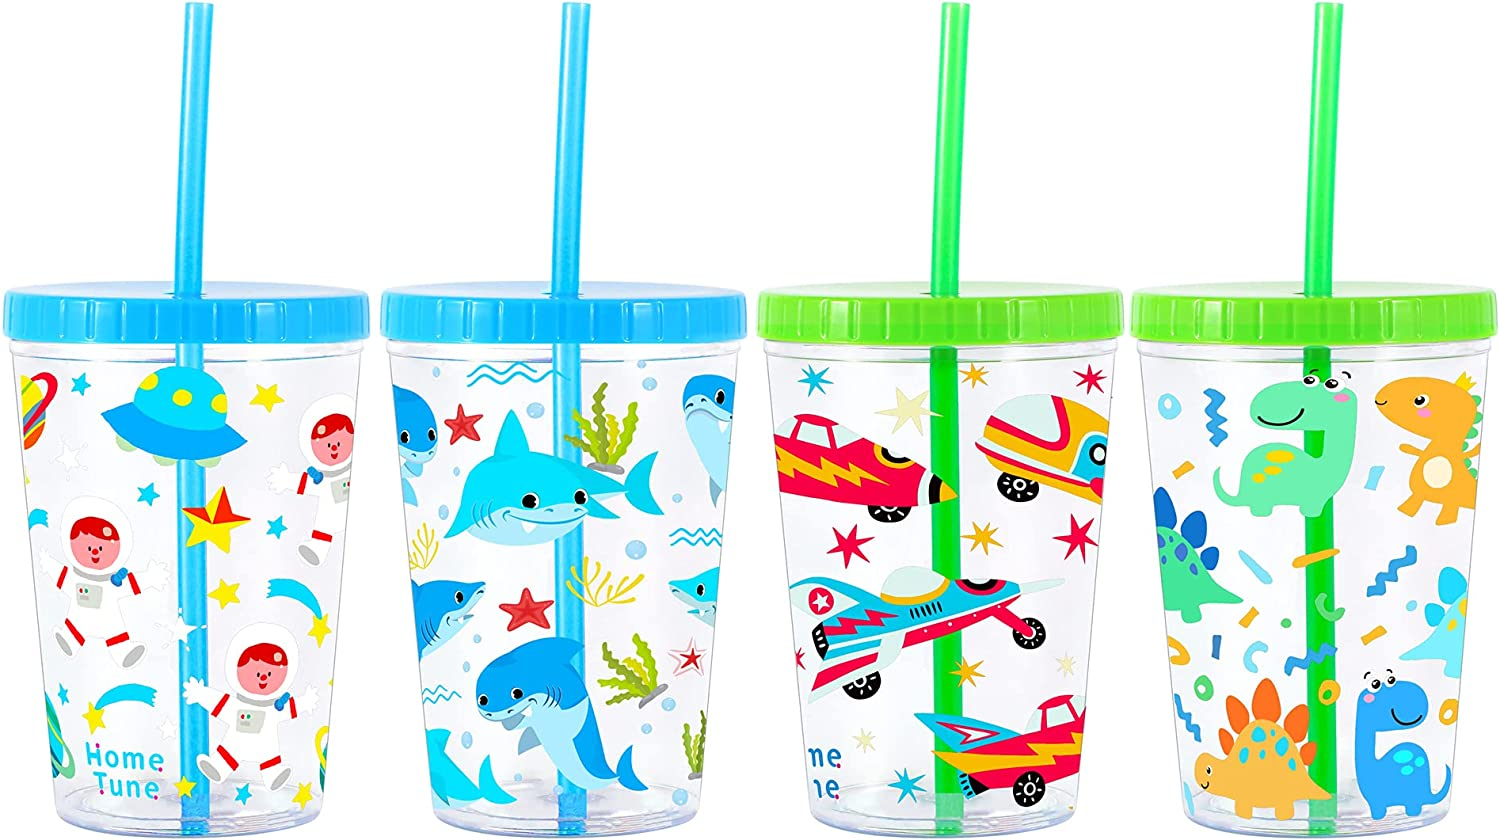 Excellence Home Tune 16oz Kids OFFer Tumbler Water Drinking BPA Cup Straw - Free